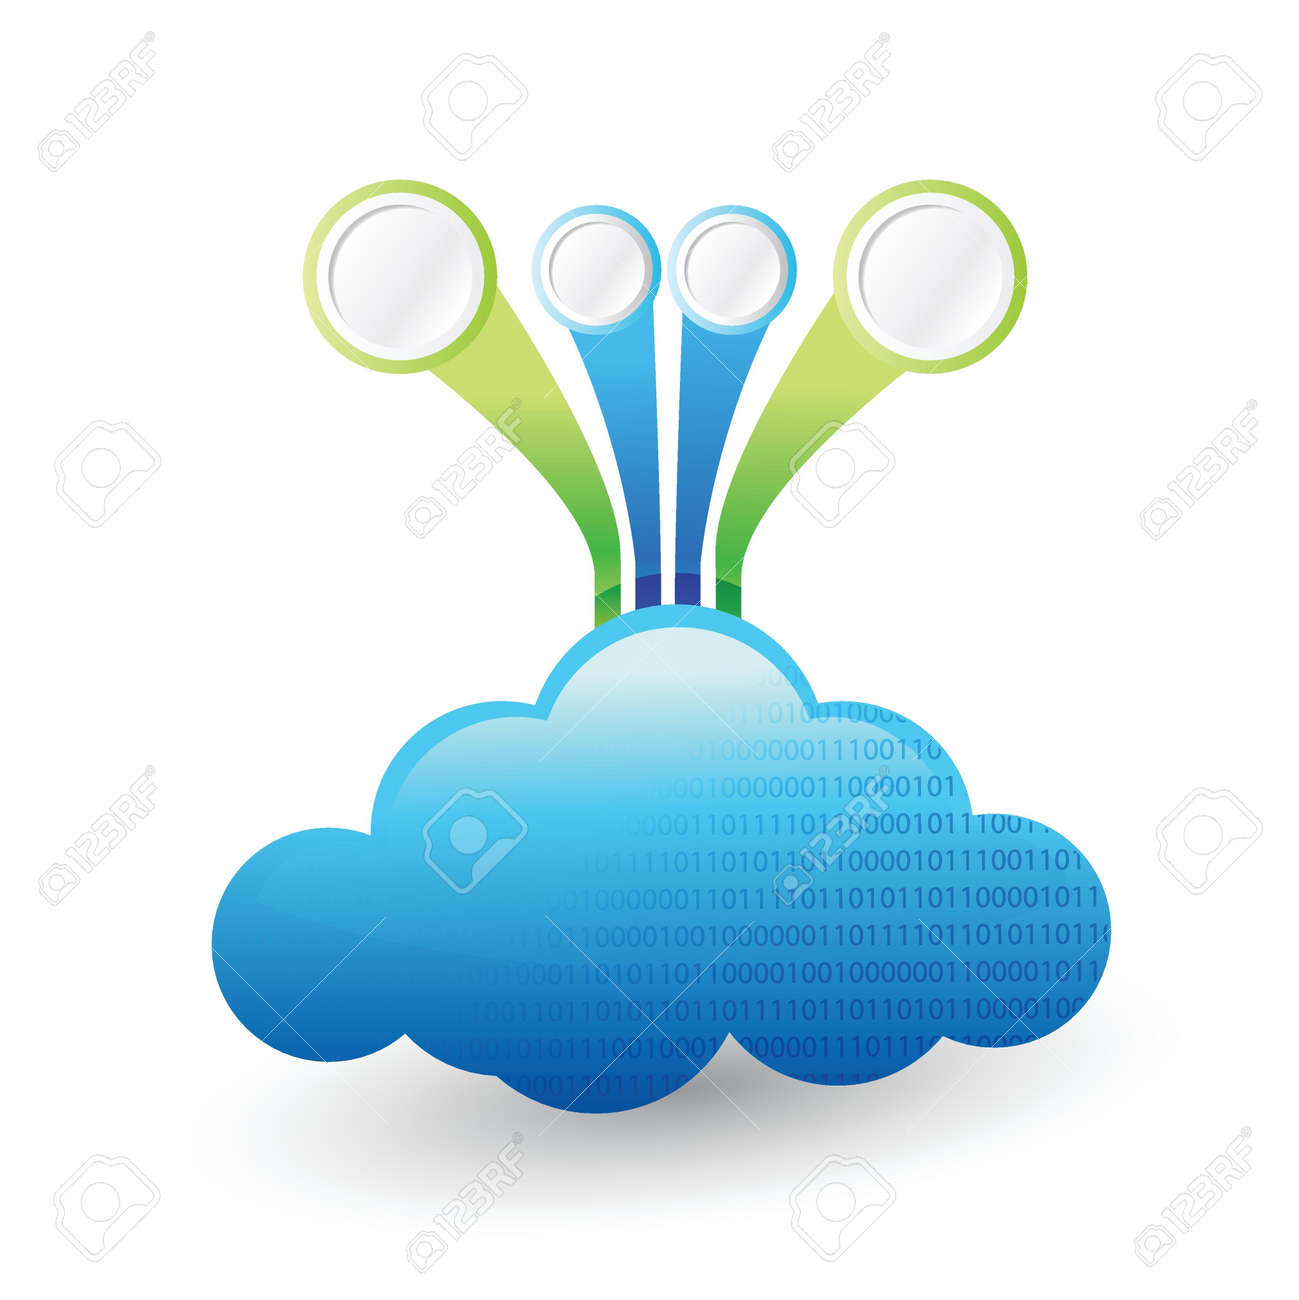 cloud computing Infographic template illustration design isolated over white Stock Vector - 20760600